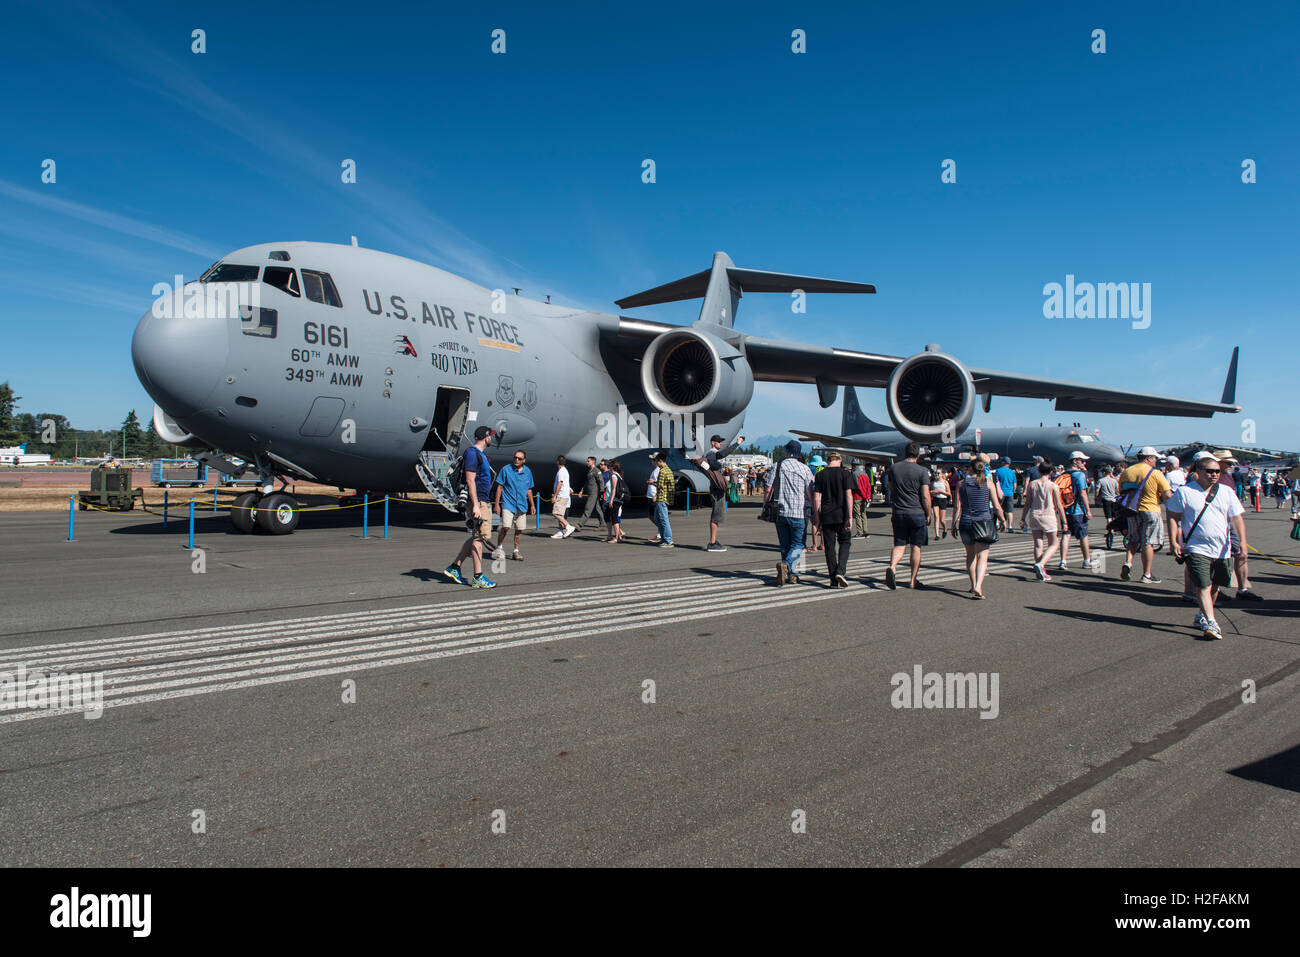 833rd aero squadron - Stock Photo Us Air Force Boeing C 17 Globemaster Lll On Display At The Abbotsford Airshow British Columbia